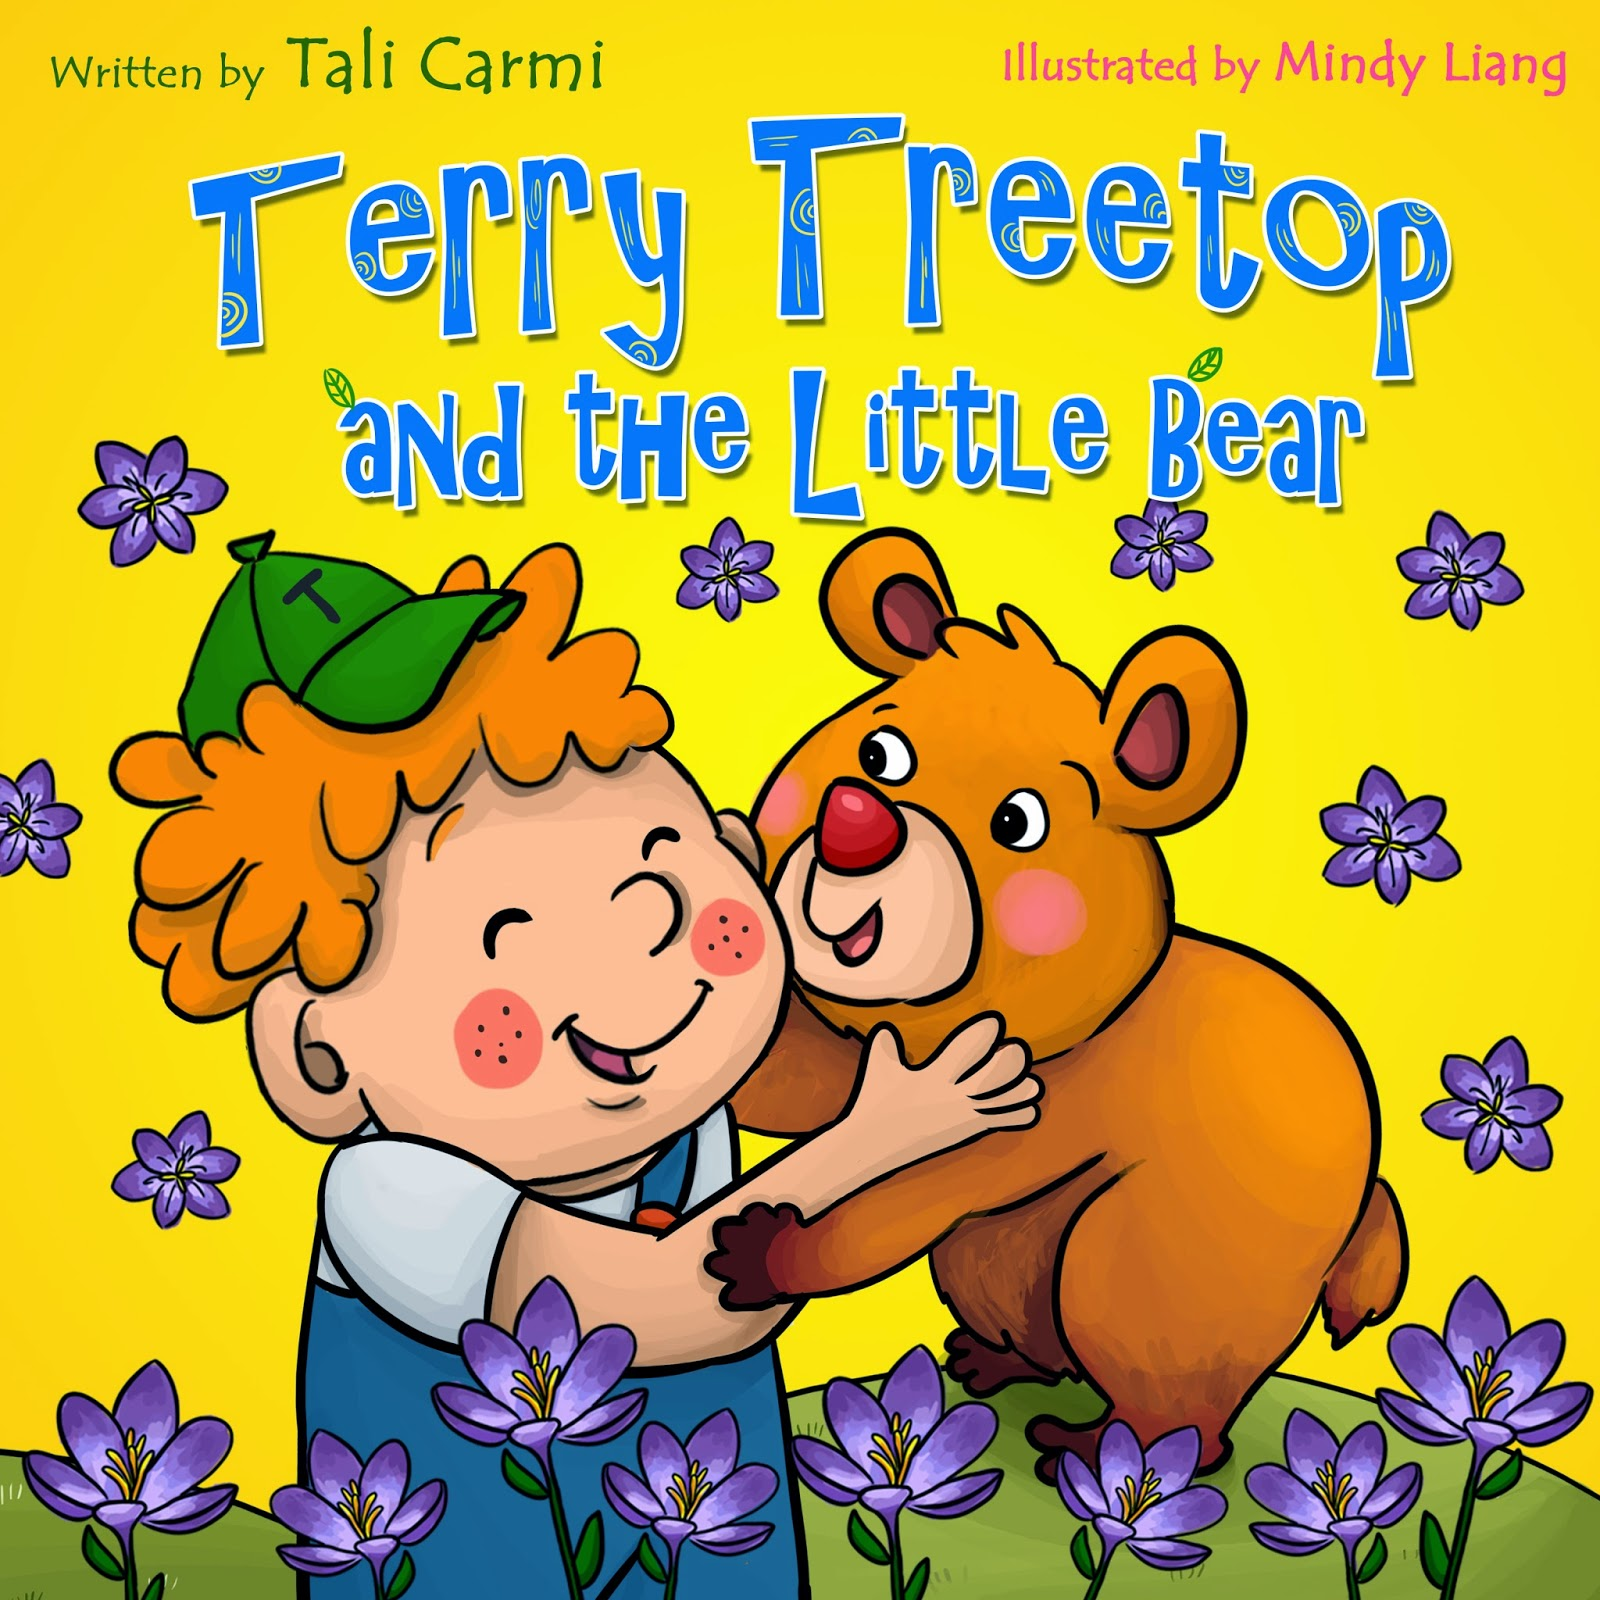 Terry_Treetop_and_the_Little_Bear.jpg